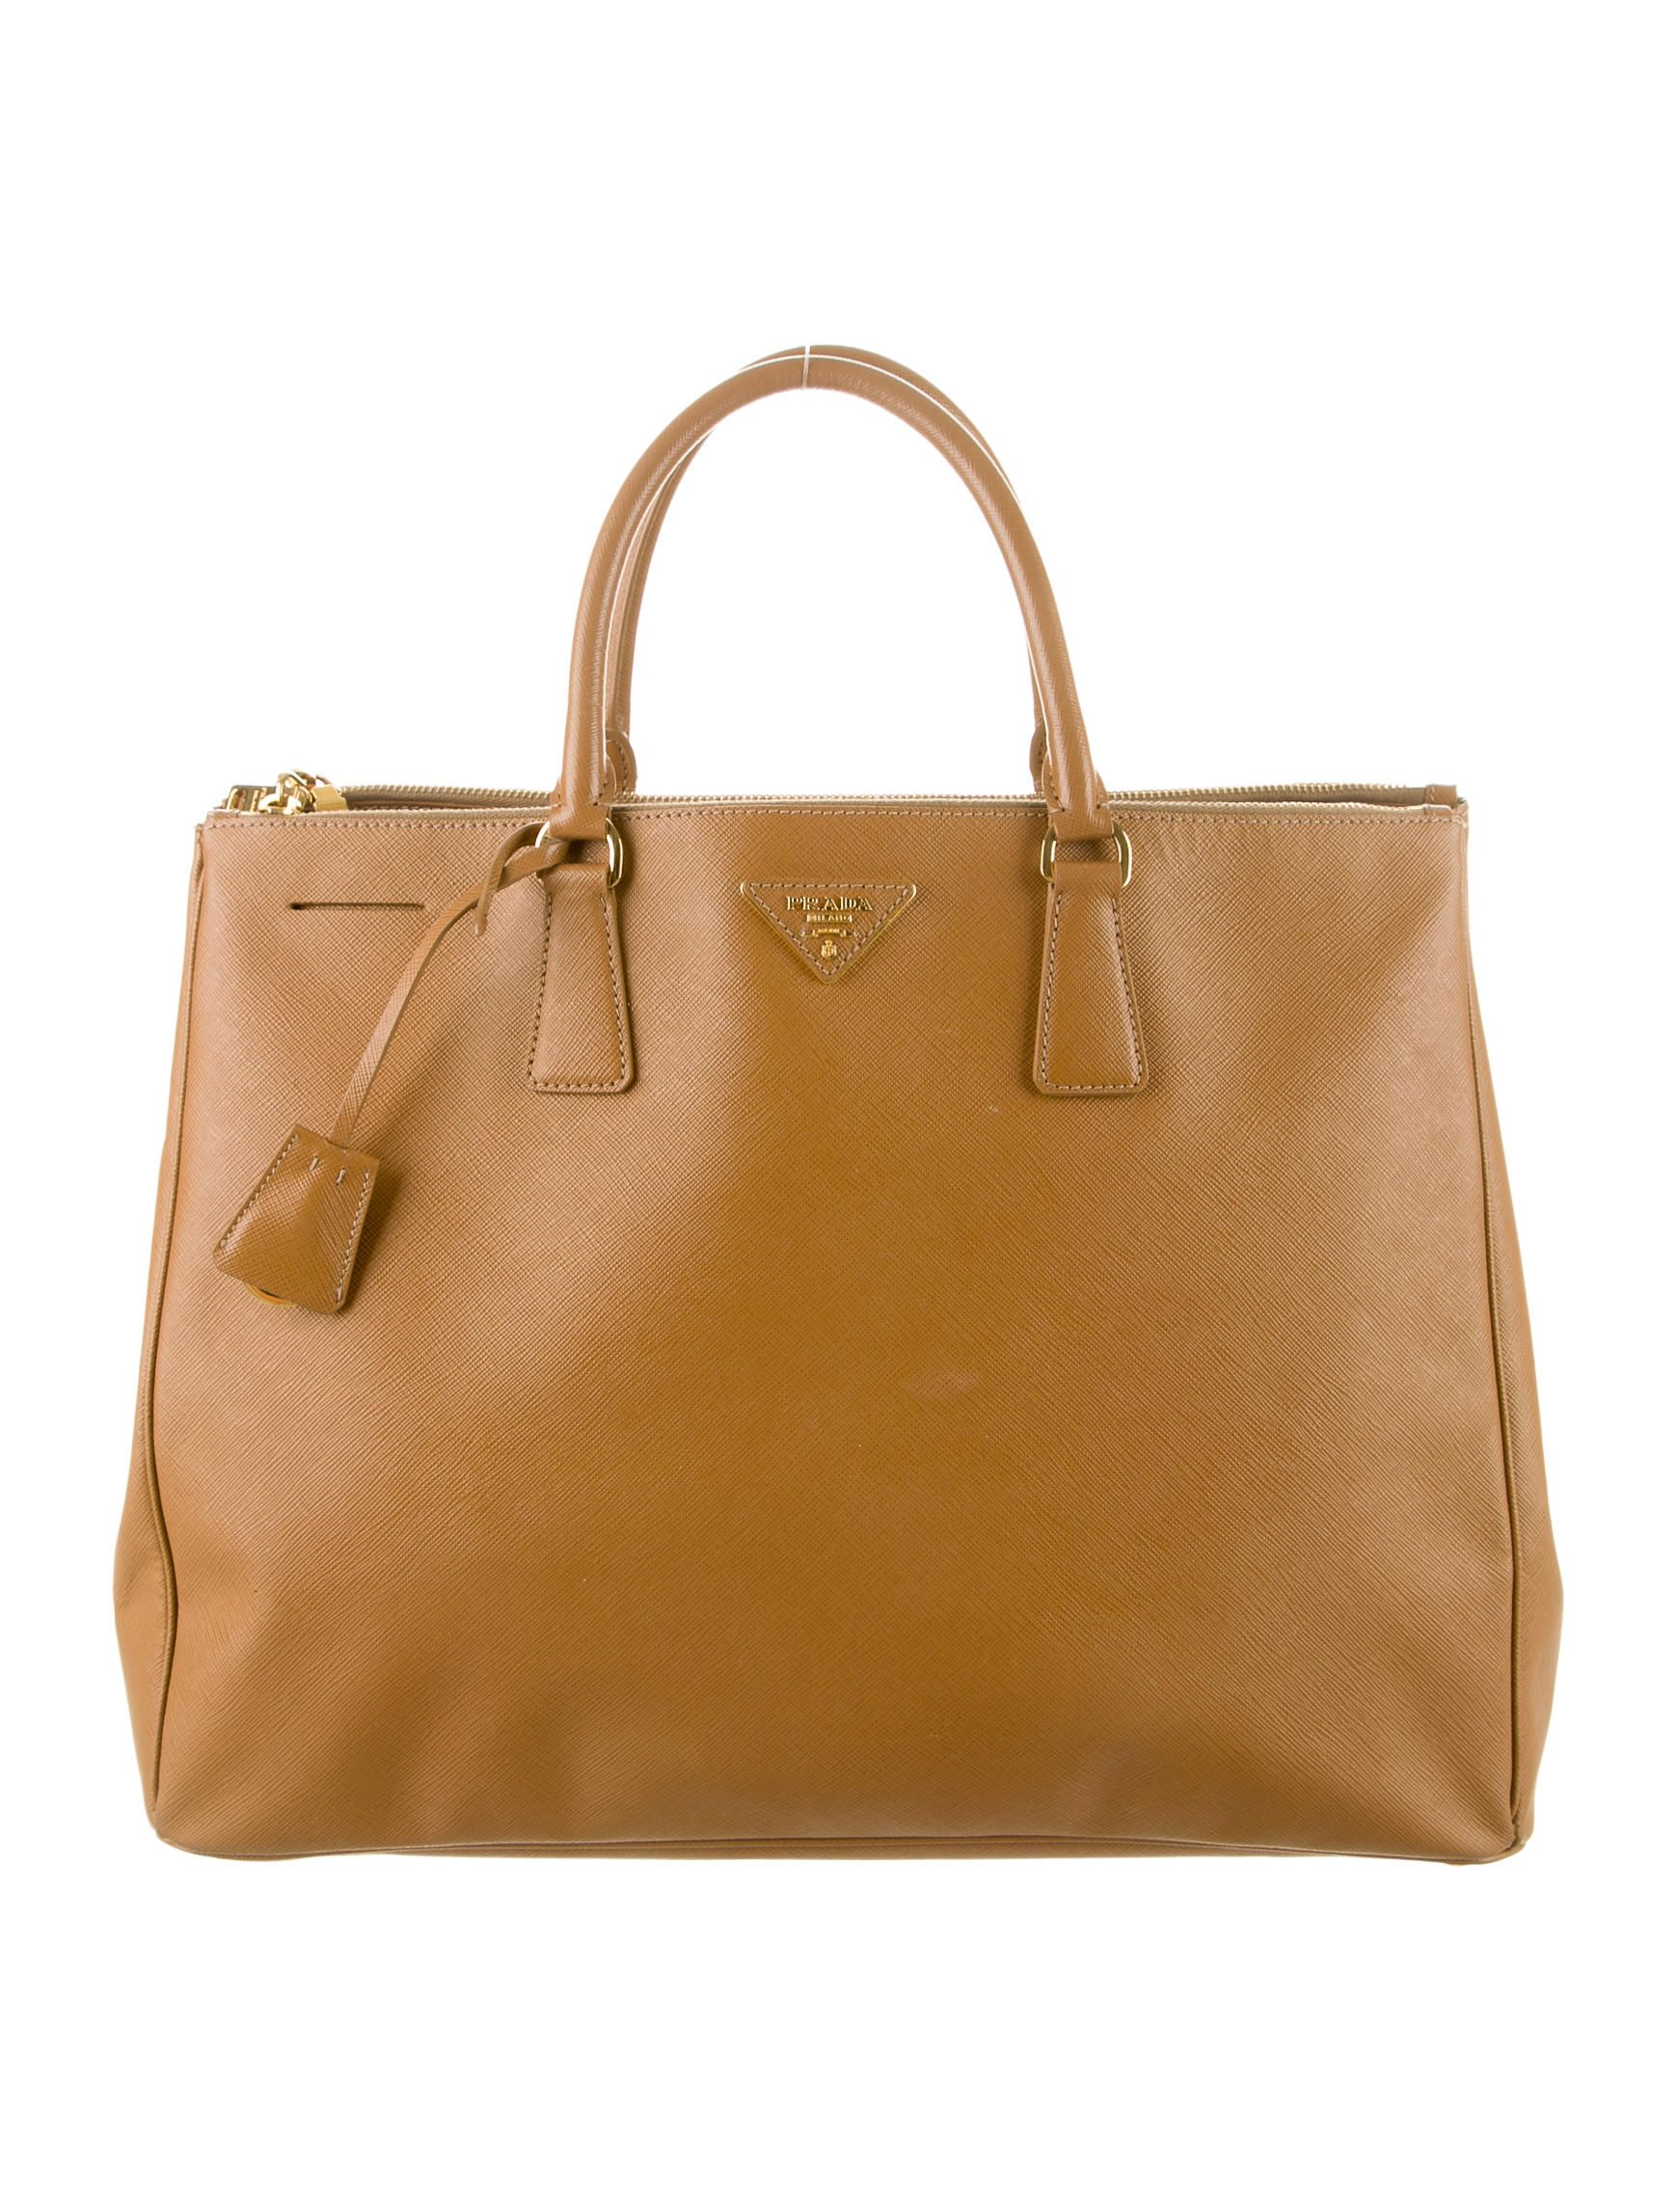 de1c6fb1498d Camel leather Prada Saffiano Lux Large Double Zip tote with gold-tone  hardware